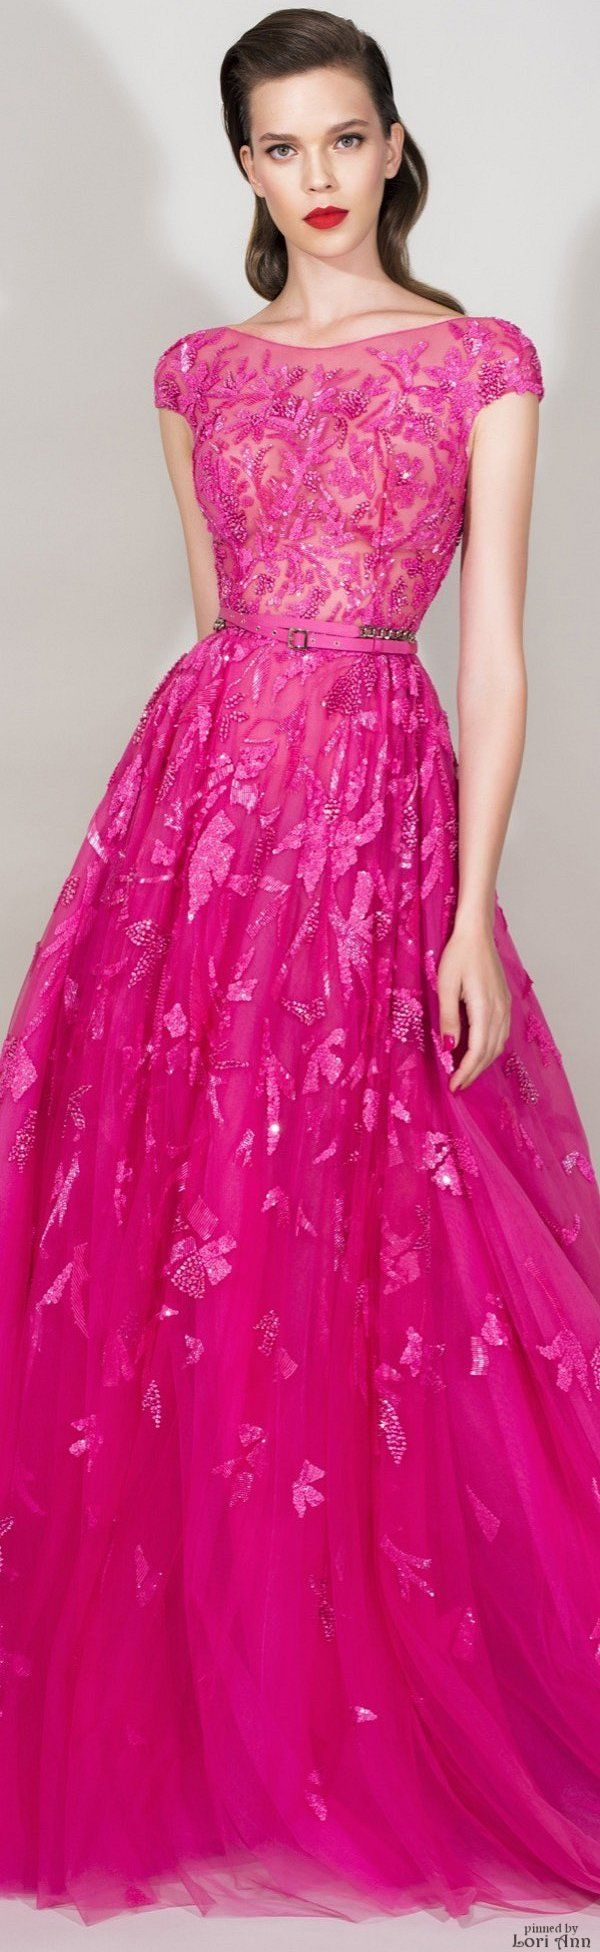 94 best Dress Collection images on Pinterest | Evening gowns, Party ...